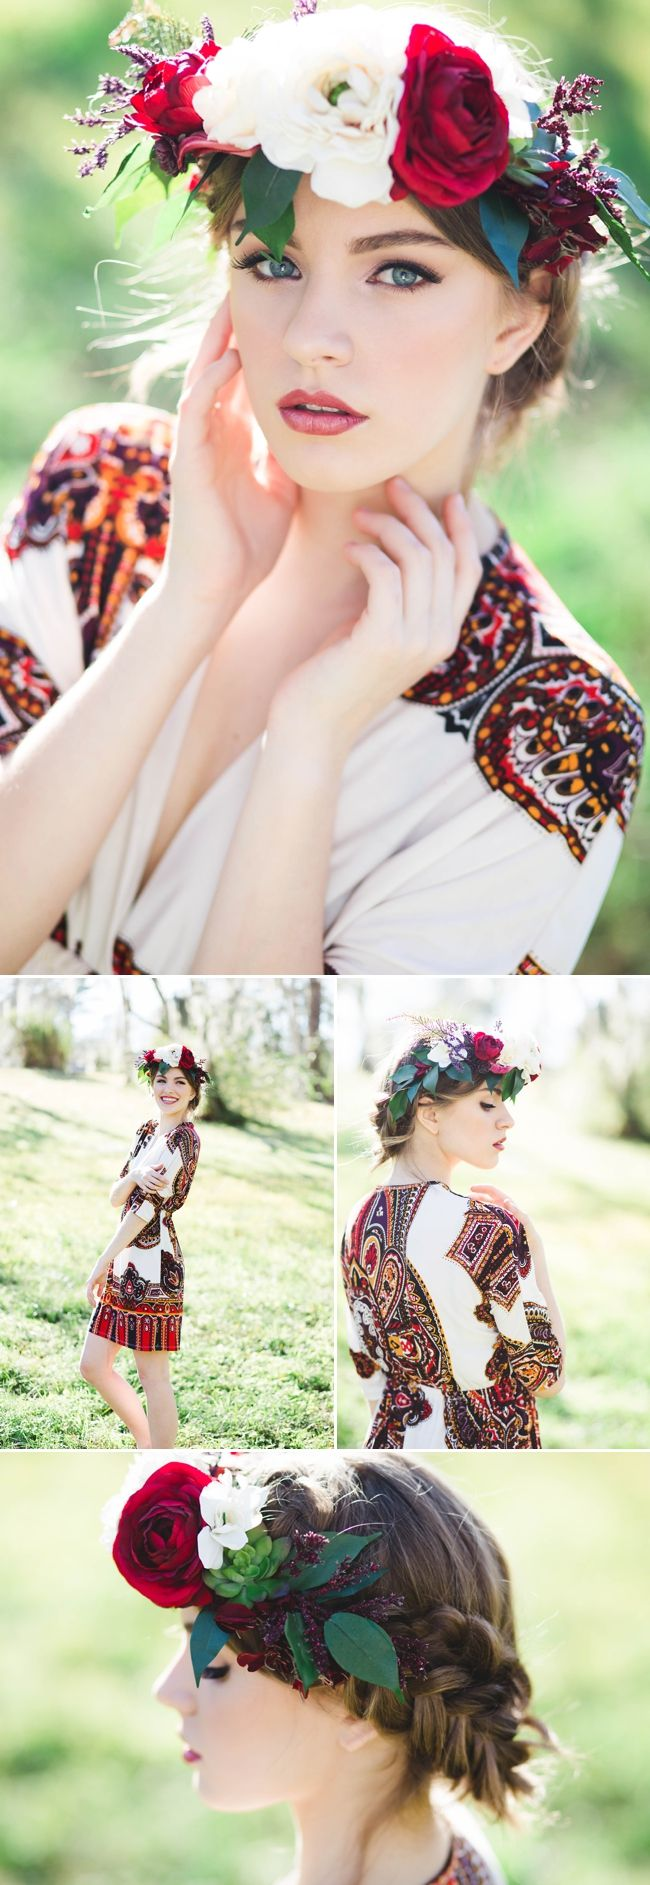 Senior portraits with floral flower crown - Ling Wang Photography - Jessica Pettey